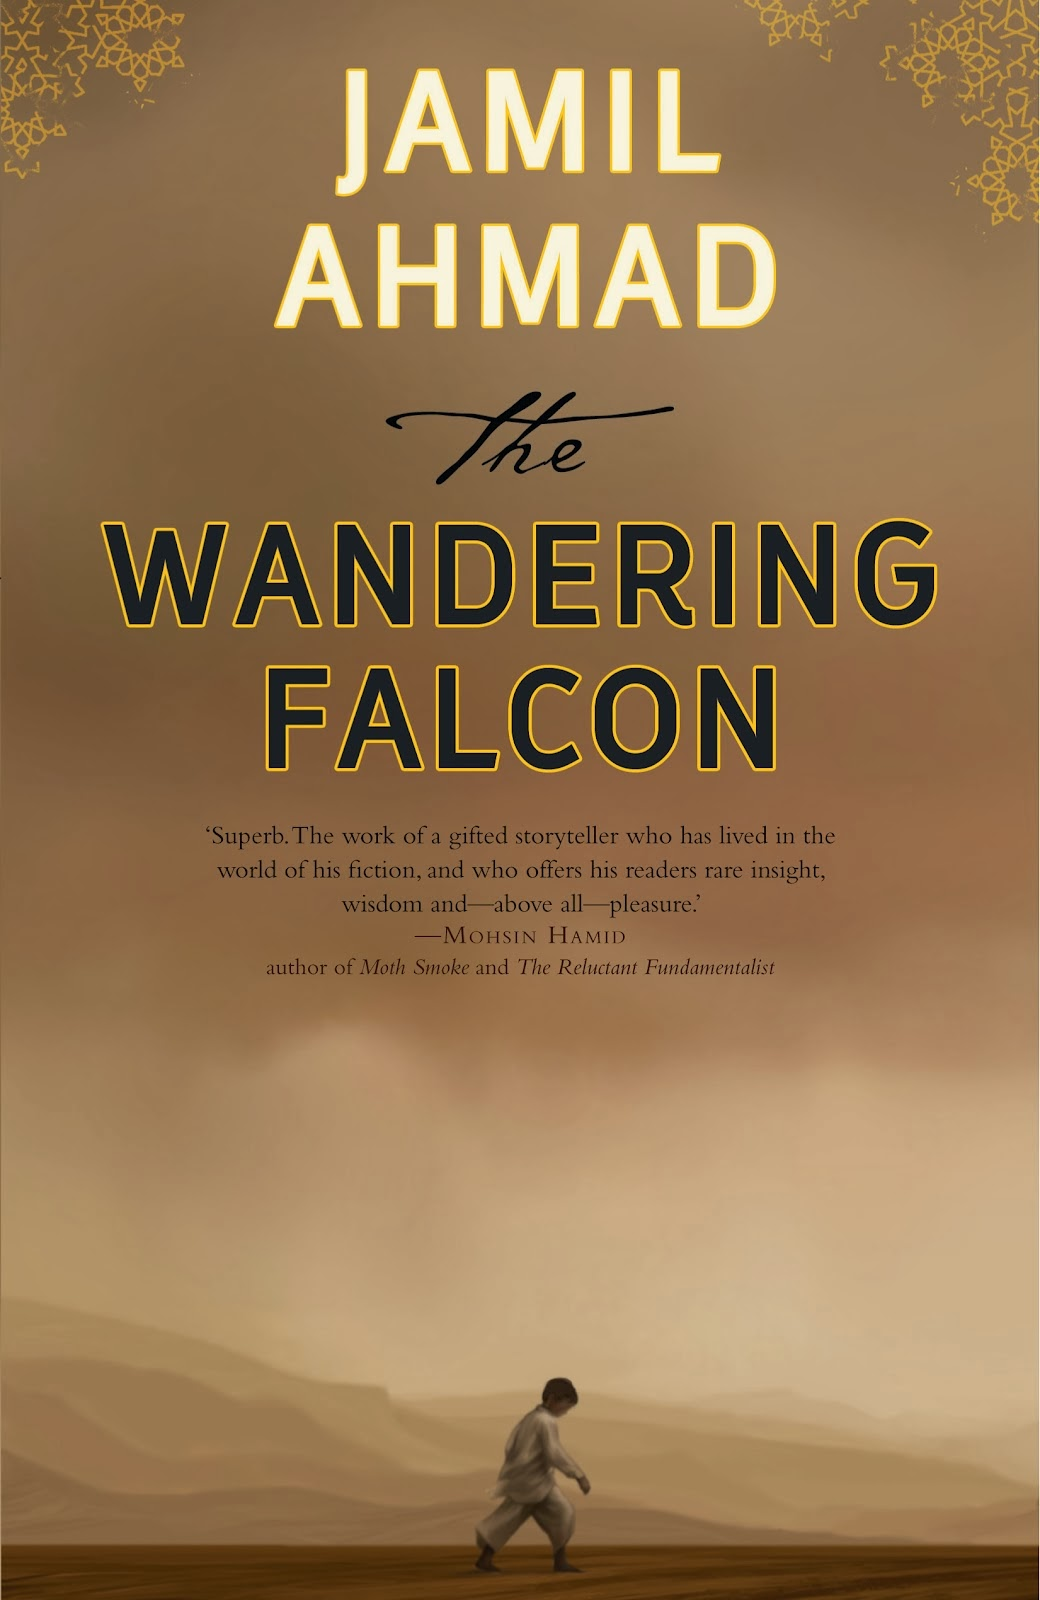 http://discover.halifaxpubliclibraries.ca/?q=title:wandering%20falcon